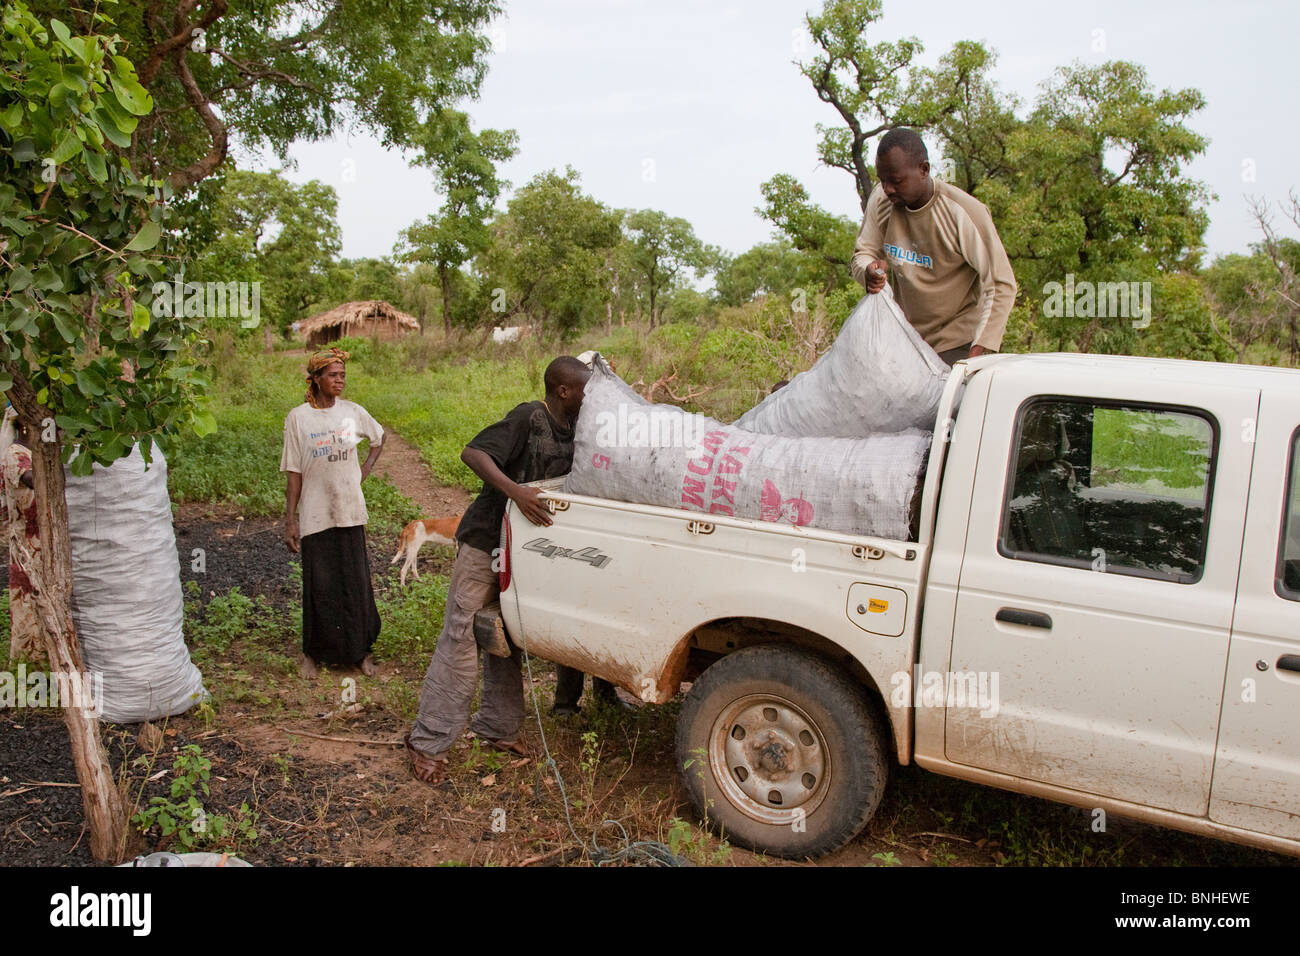 Urban Ghanaian buying charcoal for cooking in bulk from a rural charcoal burner. - Stock Image